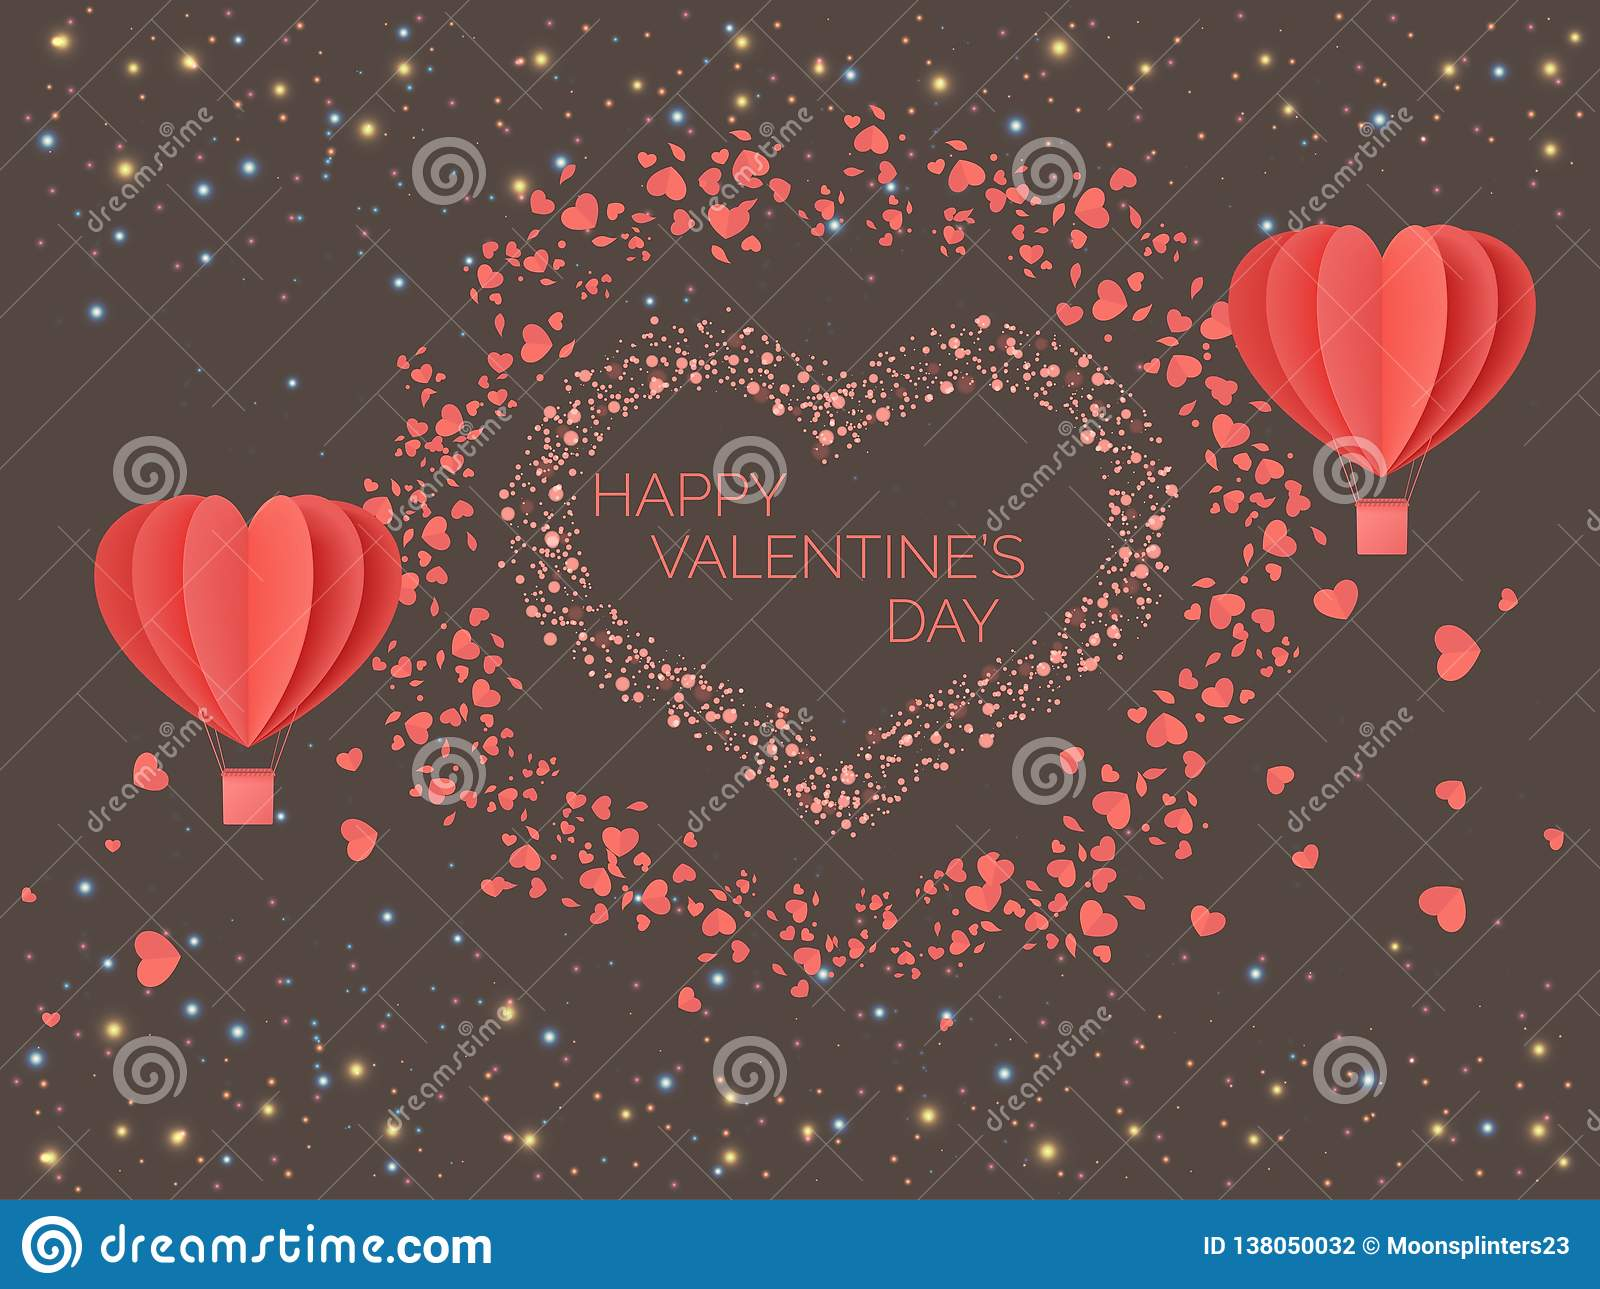 Happy valentines day. Red coral colored hearts in the form of balloons against the background of lights of multicolored particles.